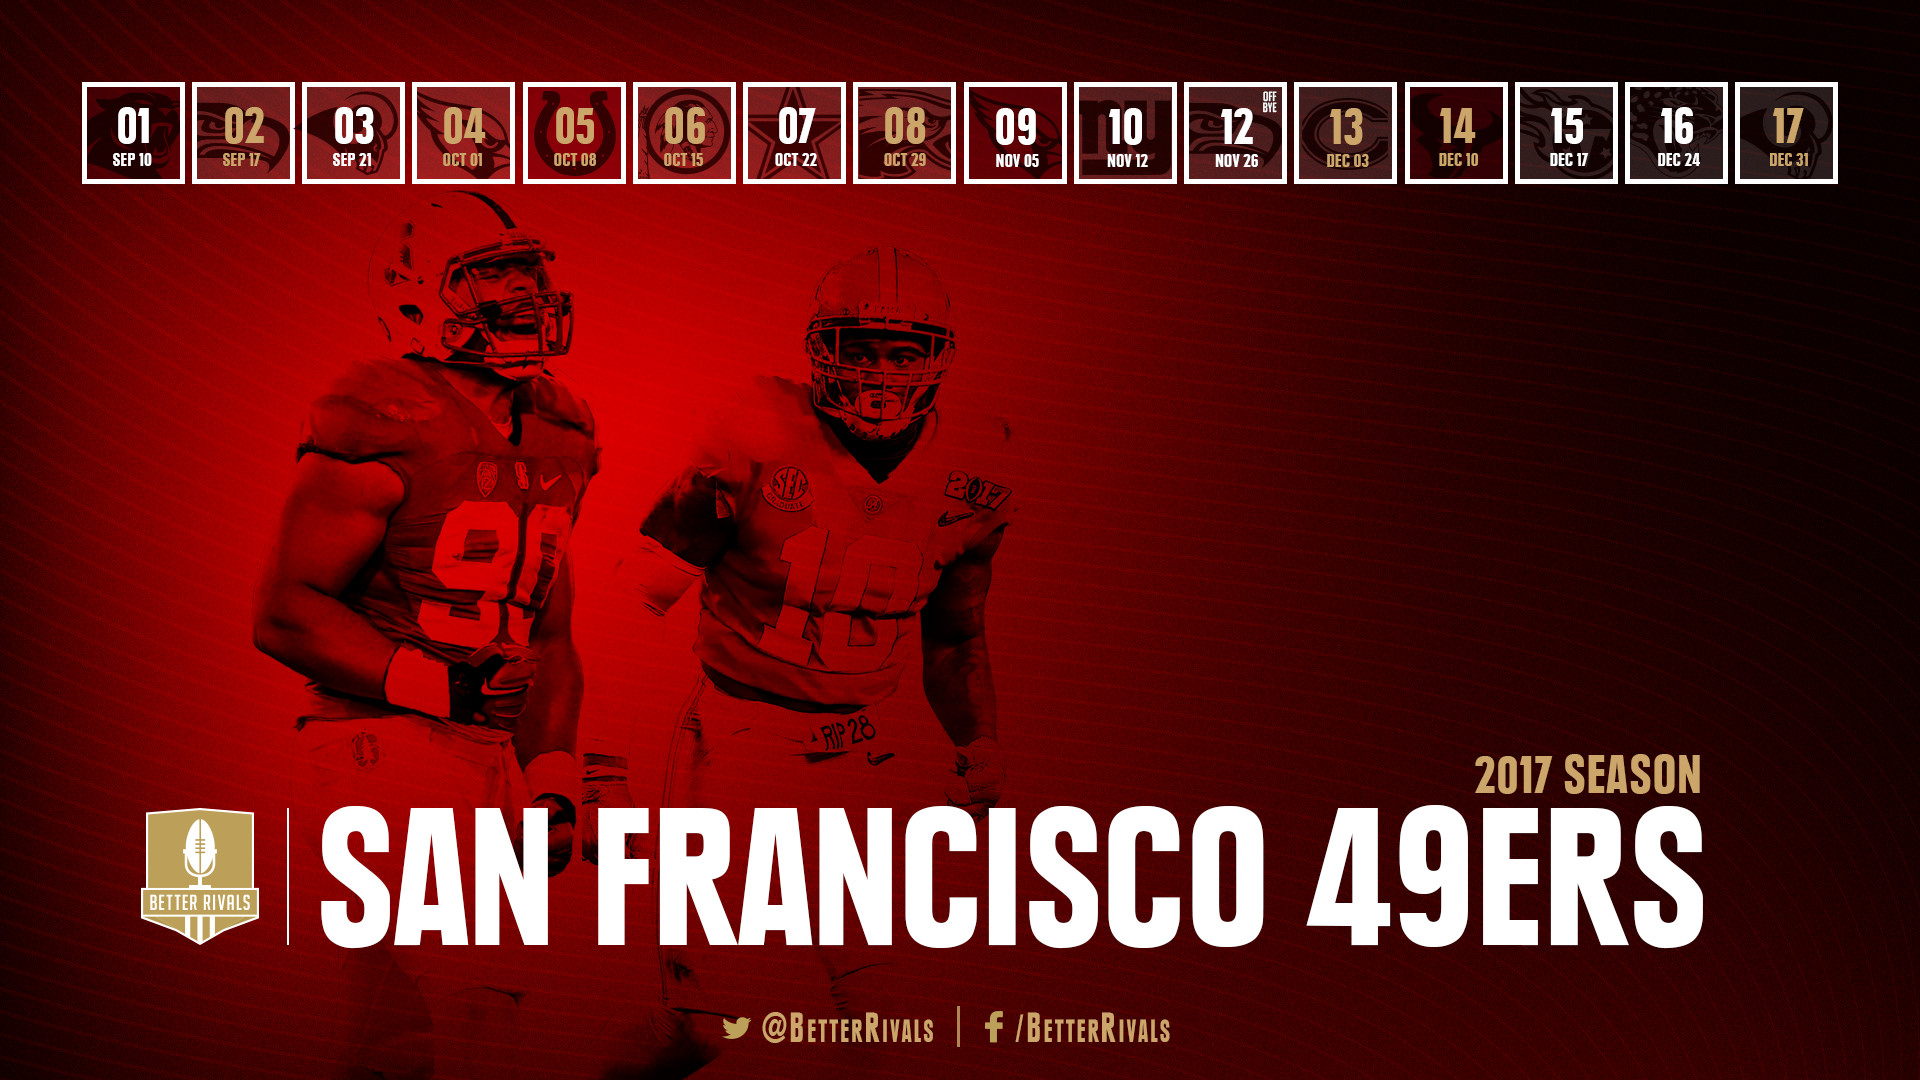 San francisco 49ers wallpaper 72 images 2560x1600 2560x1600 san francisco 49ers american football san francisco voltagebd Image collections